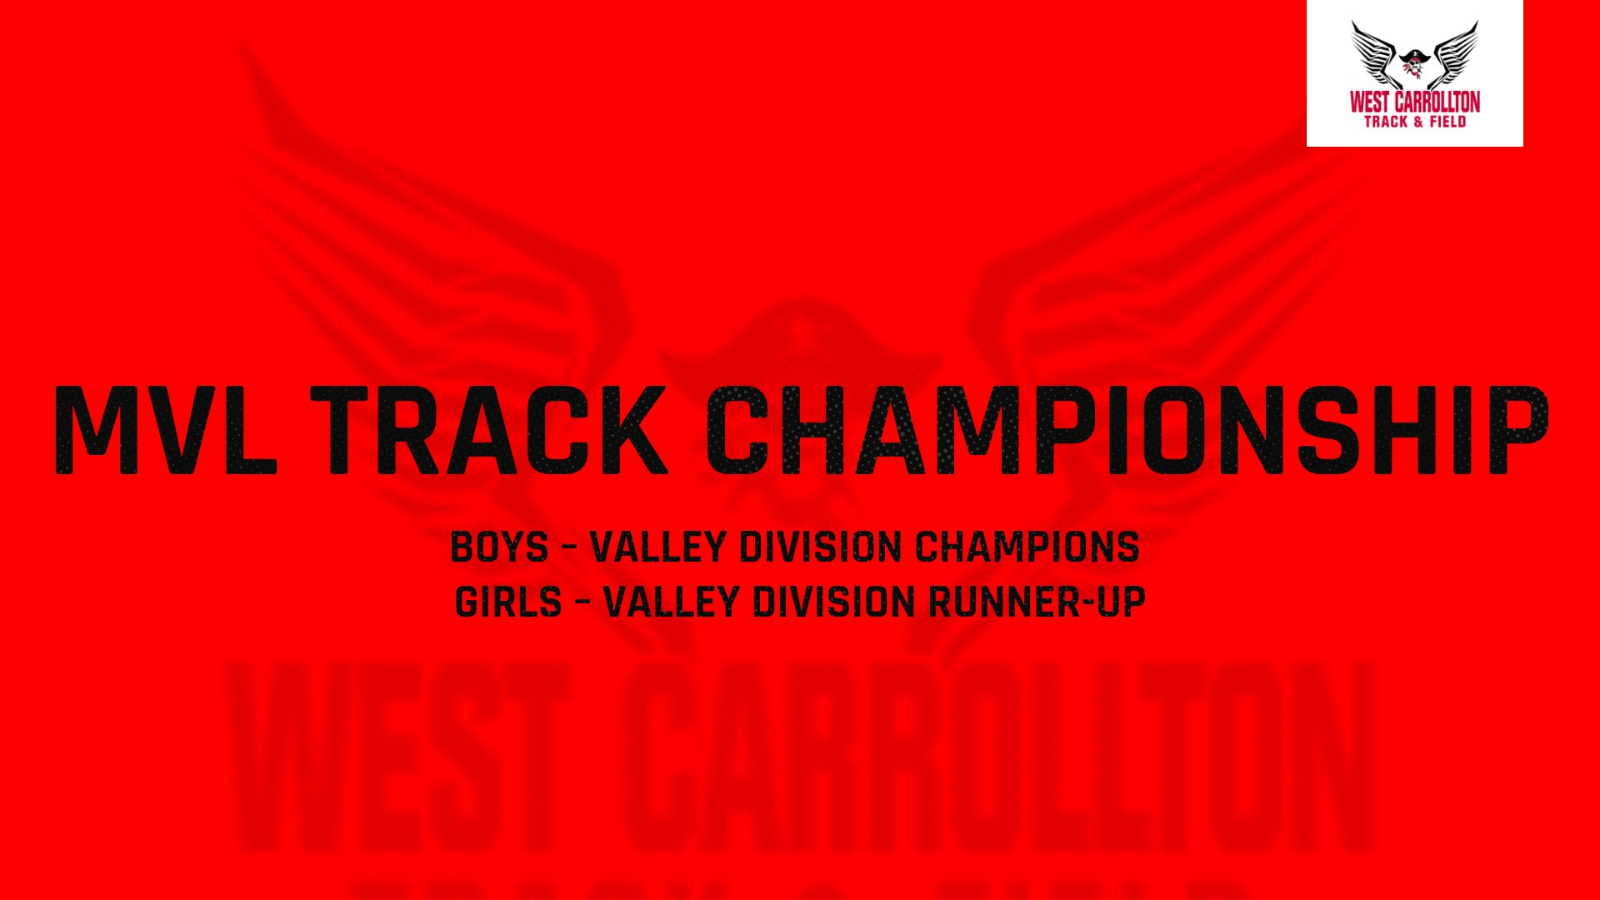 Strong Showing From the Pirates Track Teams at the MVL Championship Meet